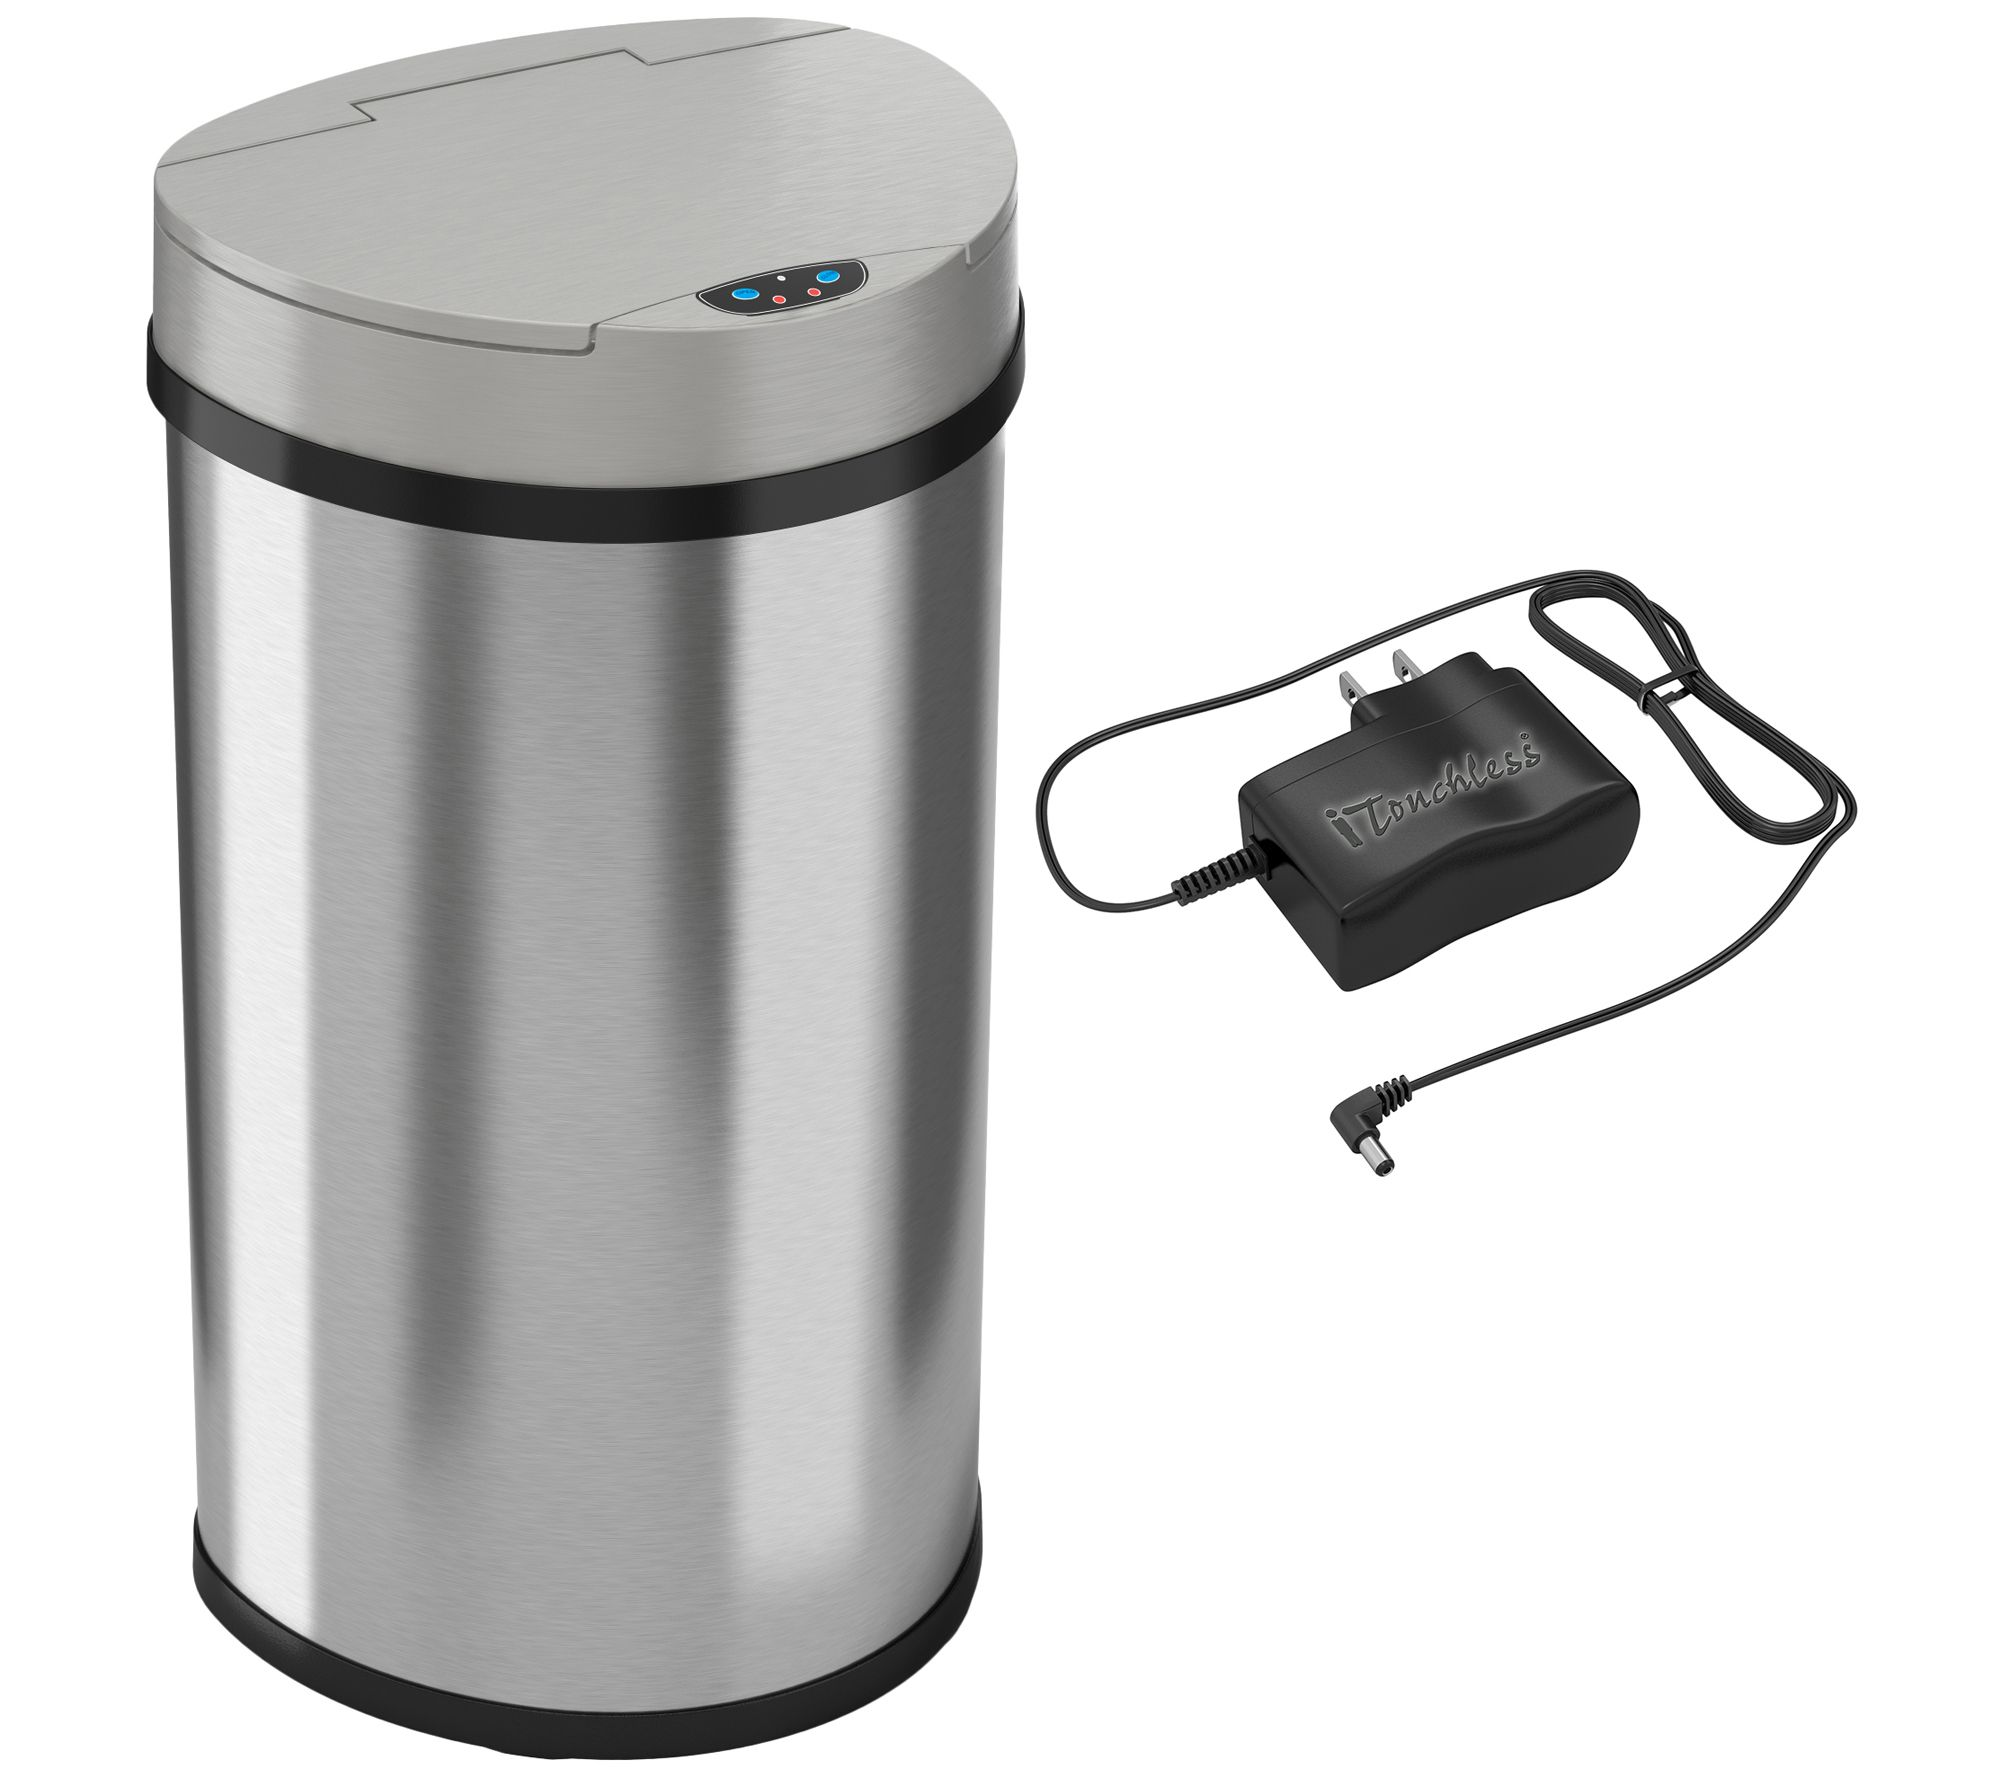 Stainless Steel Tall Kitchen Garbage Can Itouchless 13 Gallon Semi Round Trash Can Page 1 Qvc